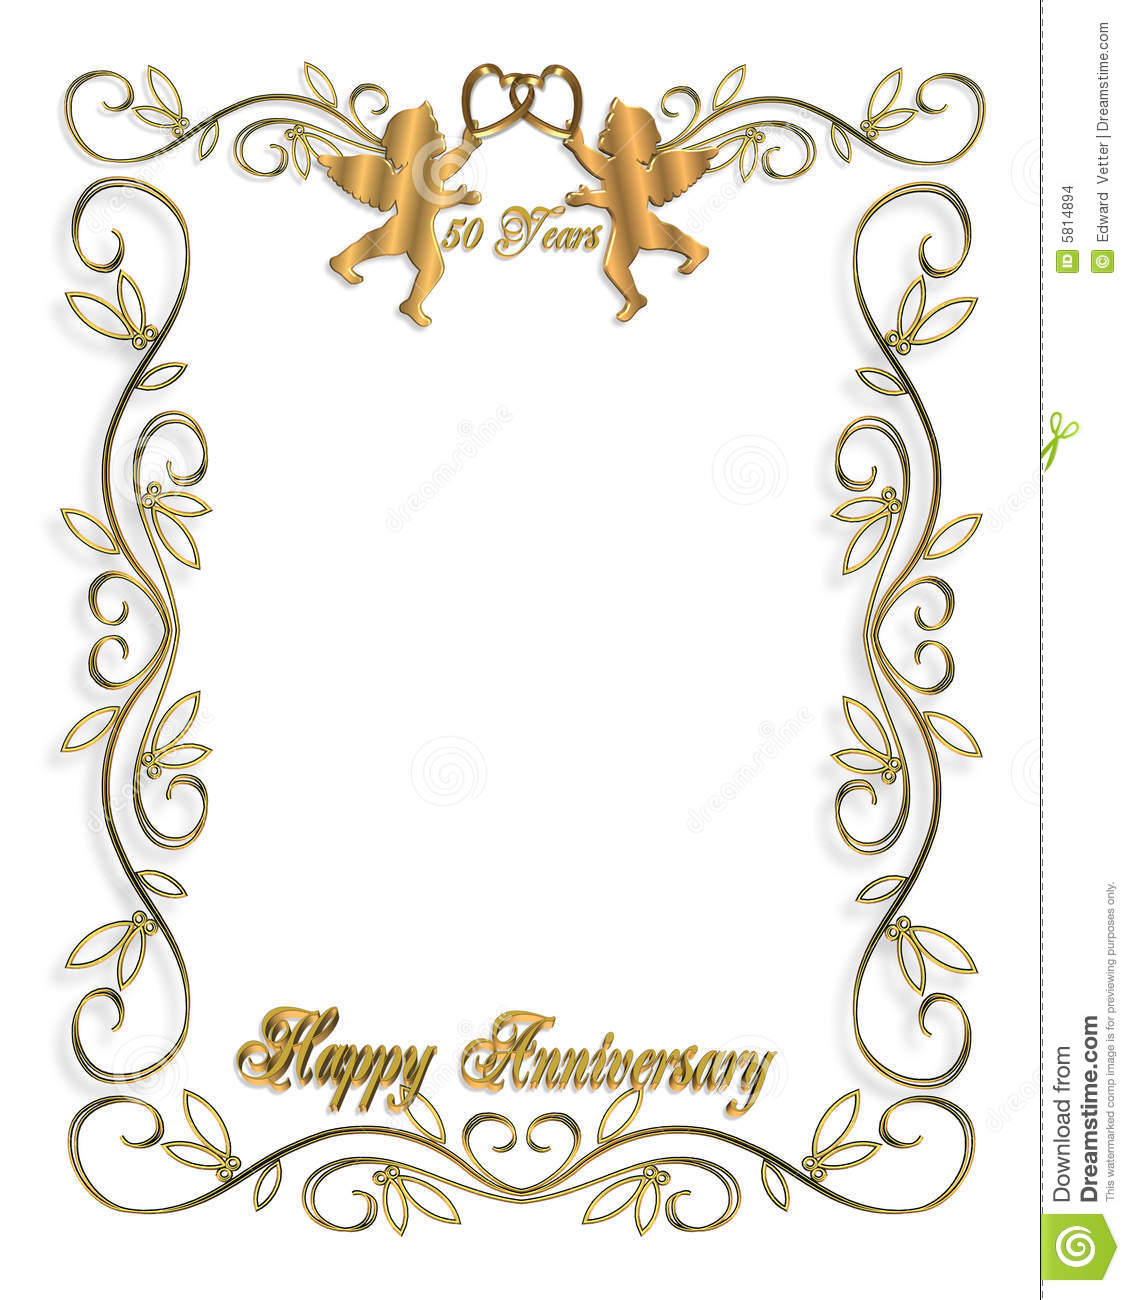 Wedding invitation gold 50th stock illustration image 5814894 wedding invitation gold 50th stopboris Choice Image